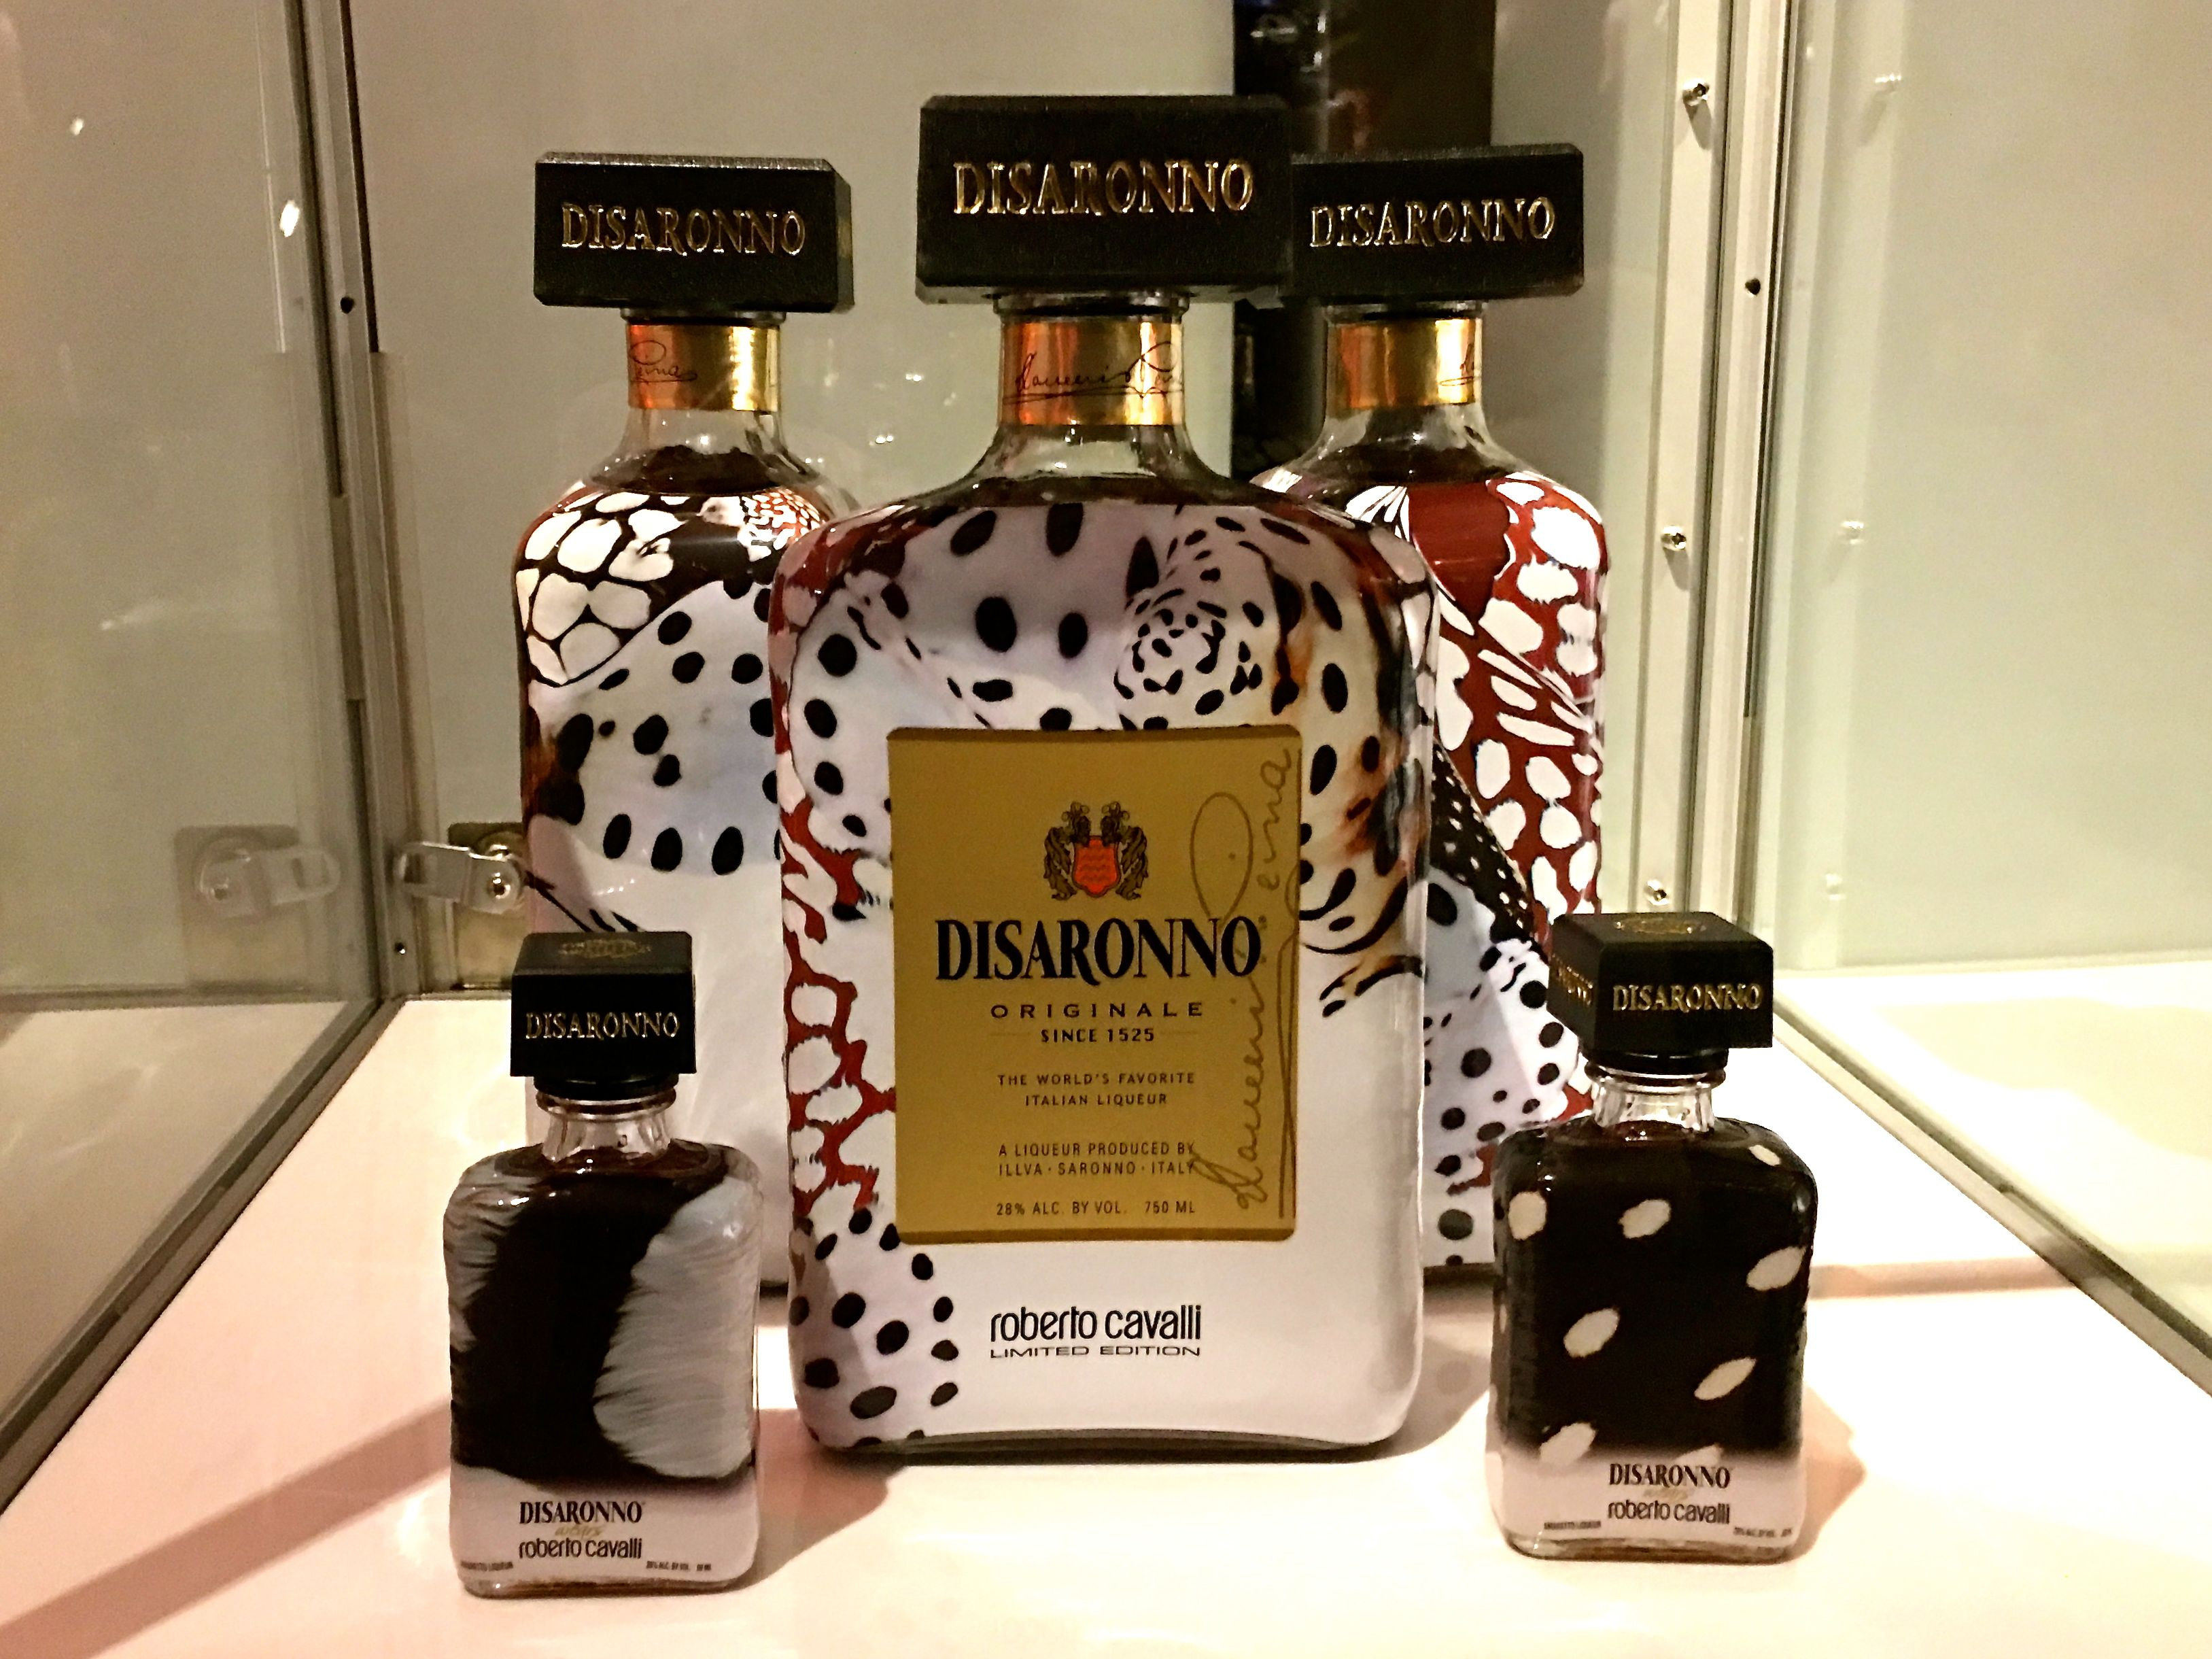 Disaronno Bottles